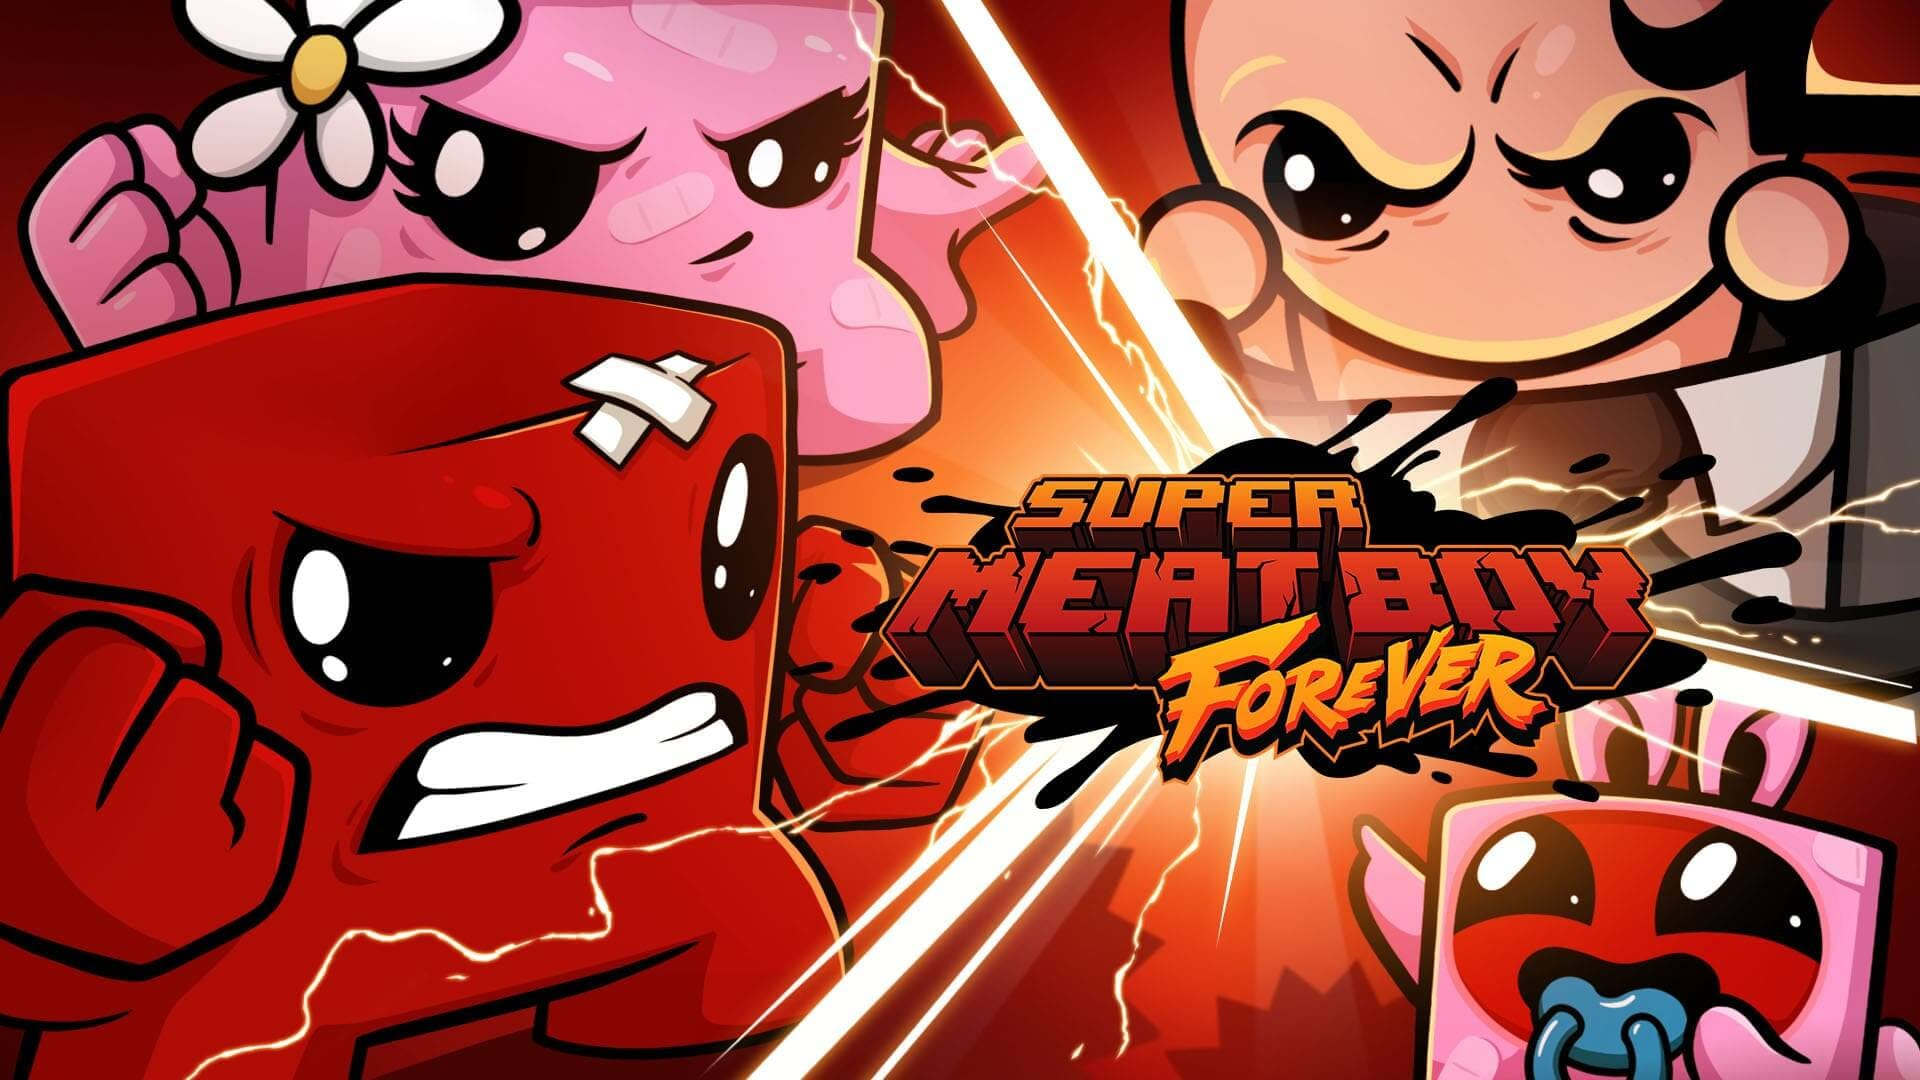 Super Meat Boy Forever Save Game location